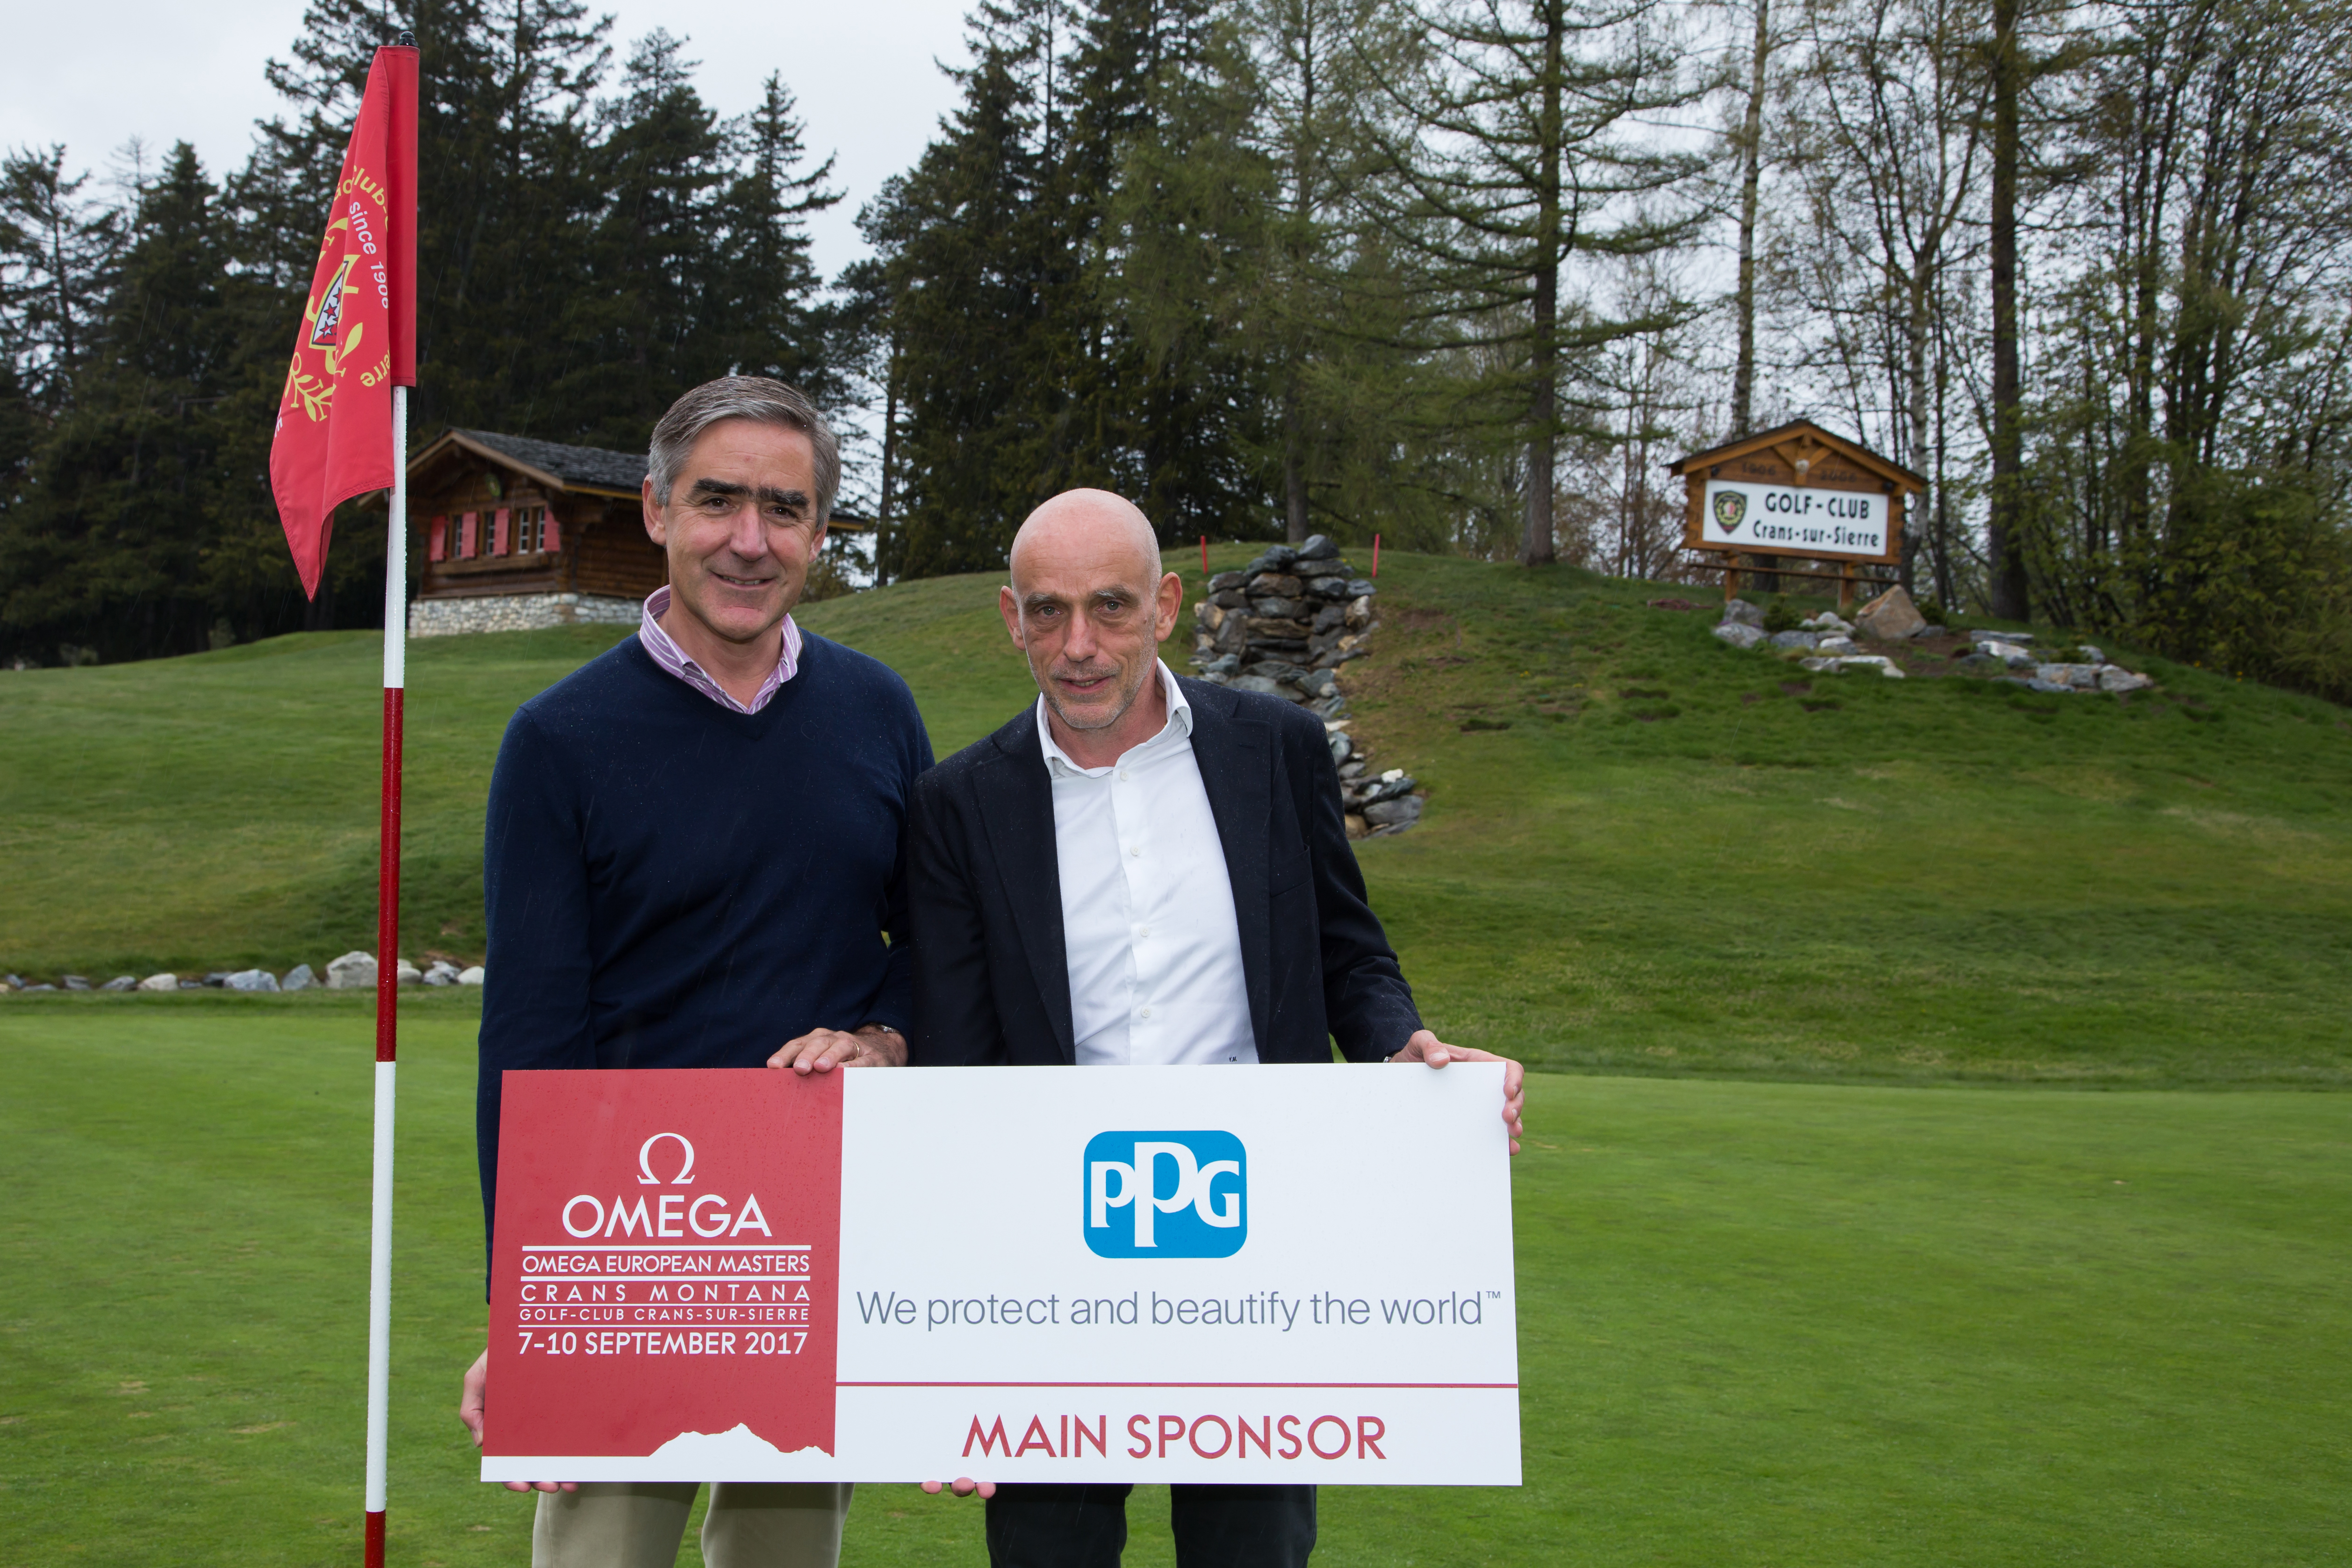 Jean-Marie Greindl (left), PPG senior vice president, global architectural coatings, and president, PPG Europe, Middle East and Africa, and Tournament Director Yves Mittaz, at Omega European Masters Golf organization, celebrate PPG's sponsorship of the Omega European Masters Golf Championship, scheduled for 7-10 September at the Crans-sur-Sierre Golf-Club in Crans-Montana, Switzerland. (Photo: Business Wire)